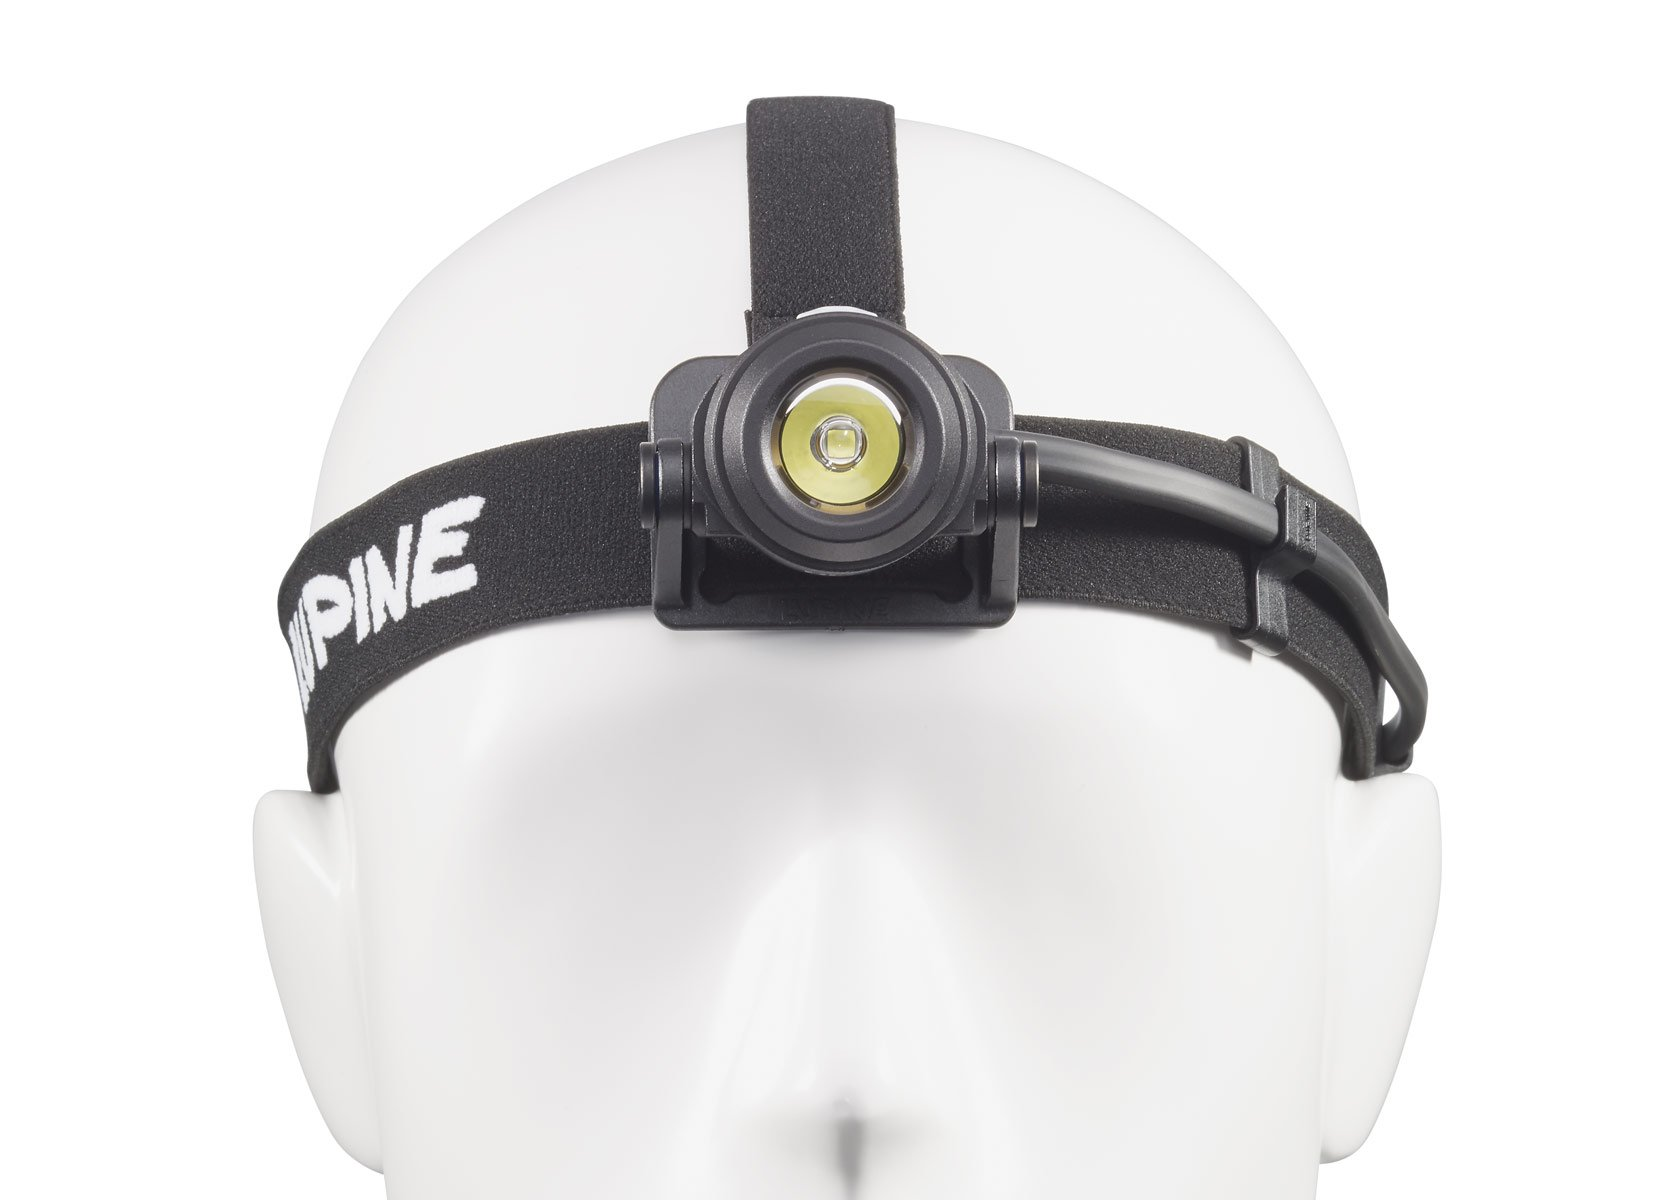 Lupine Lighting Systems Neo X2 SmartCore Headlamp System, 900 Lumens with 2.0 Ah SmartCore battery (2018 Model) by Lupine Lighting Systems